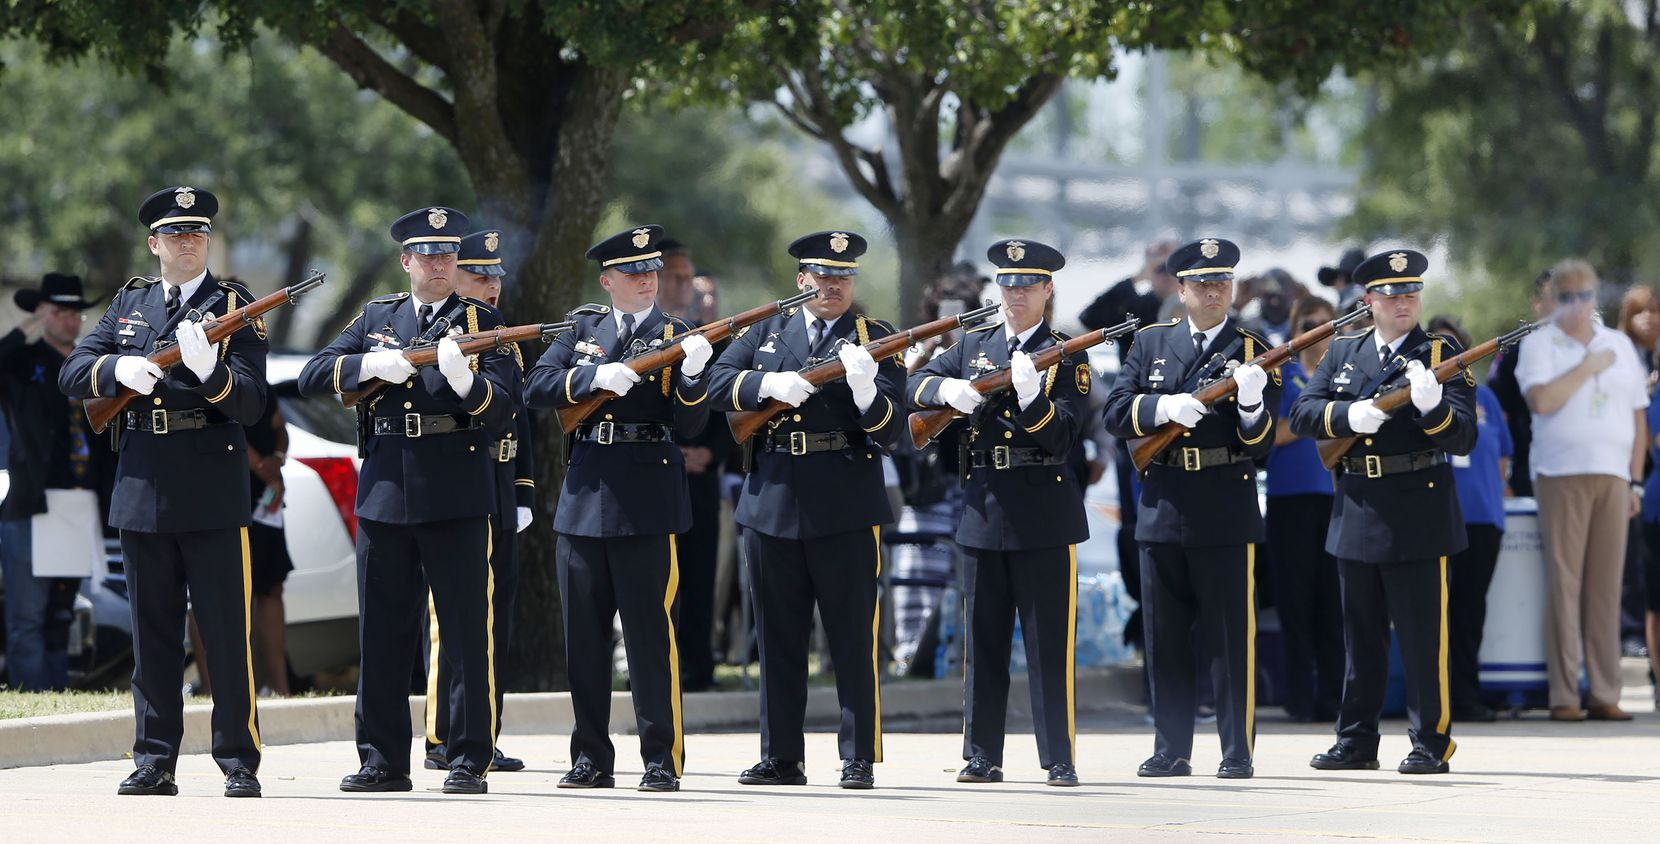 21 gun salute during a memorial service for DART Officer Brent Thompson at The Potter's House in Dallas on Wednesday, July 13, 2016. Thompson was one of five officers killed last week when a gunman opened fire during a Black Lives Matter rally in downtown Dallas.